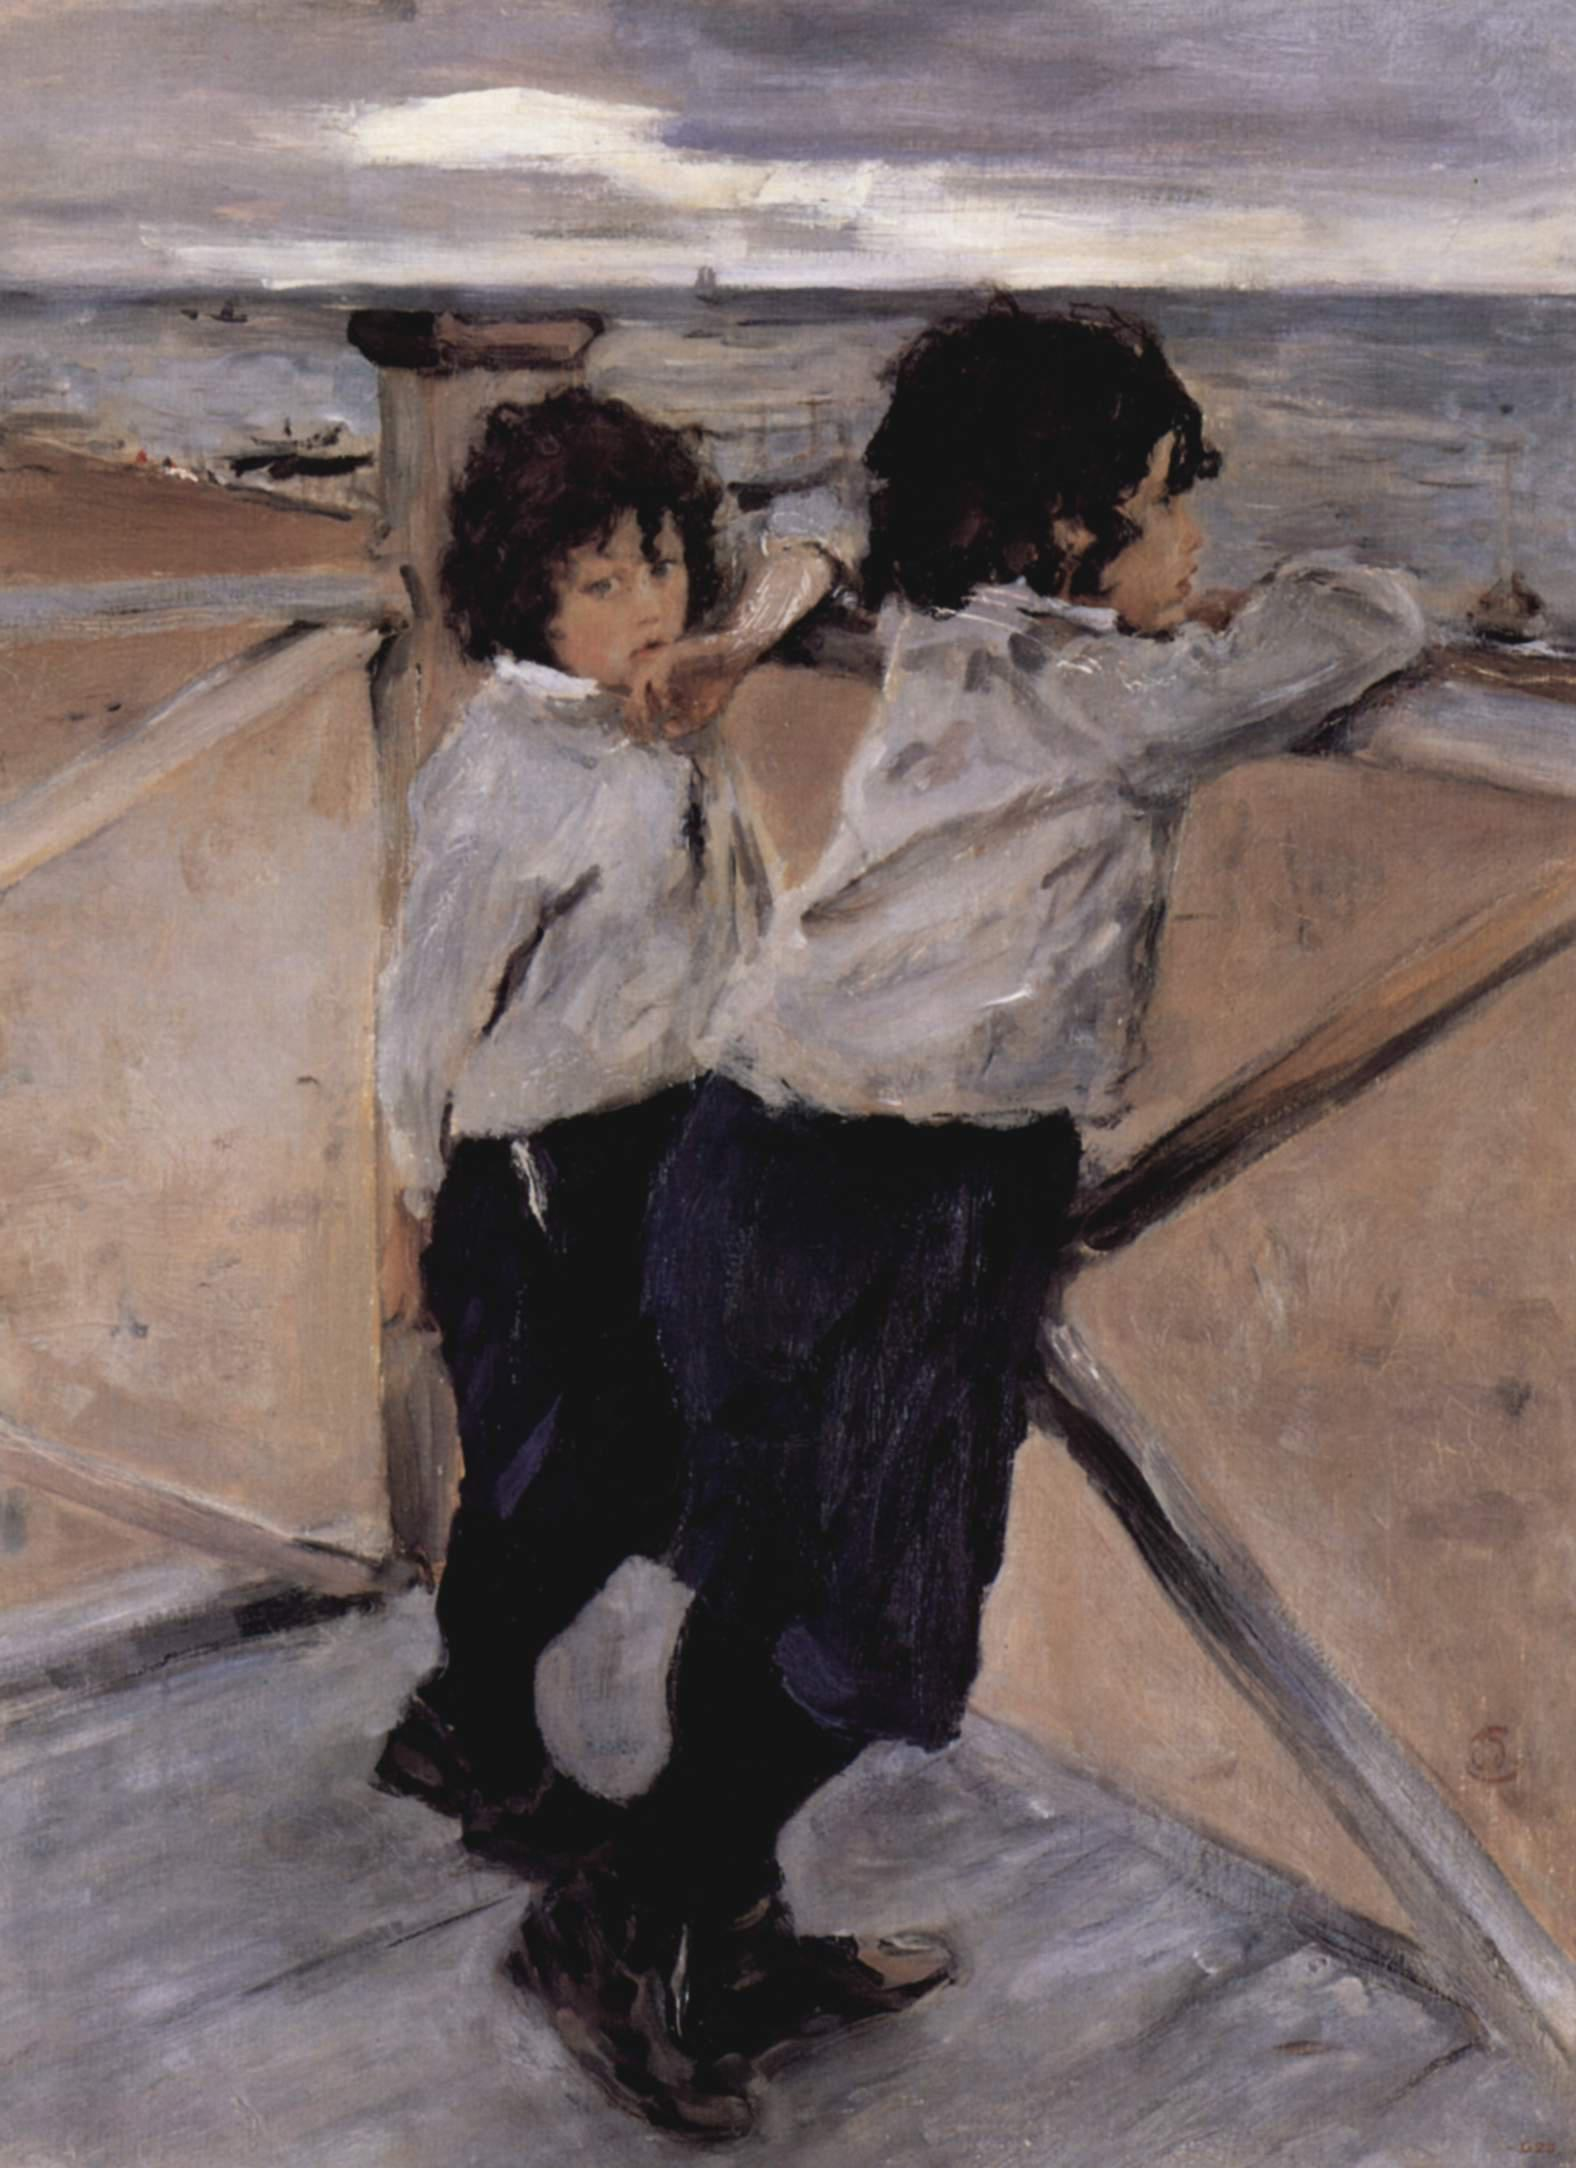 1899-Serov-They are lads-Серов-Мальчики